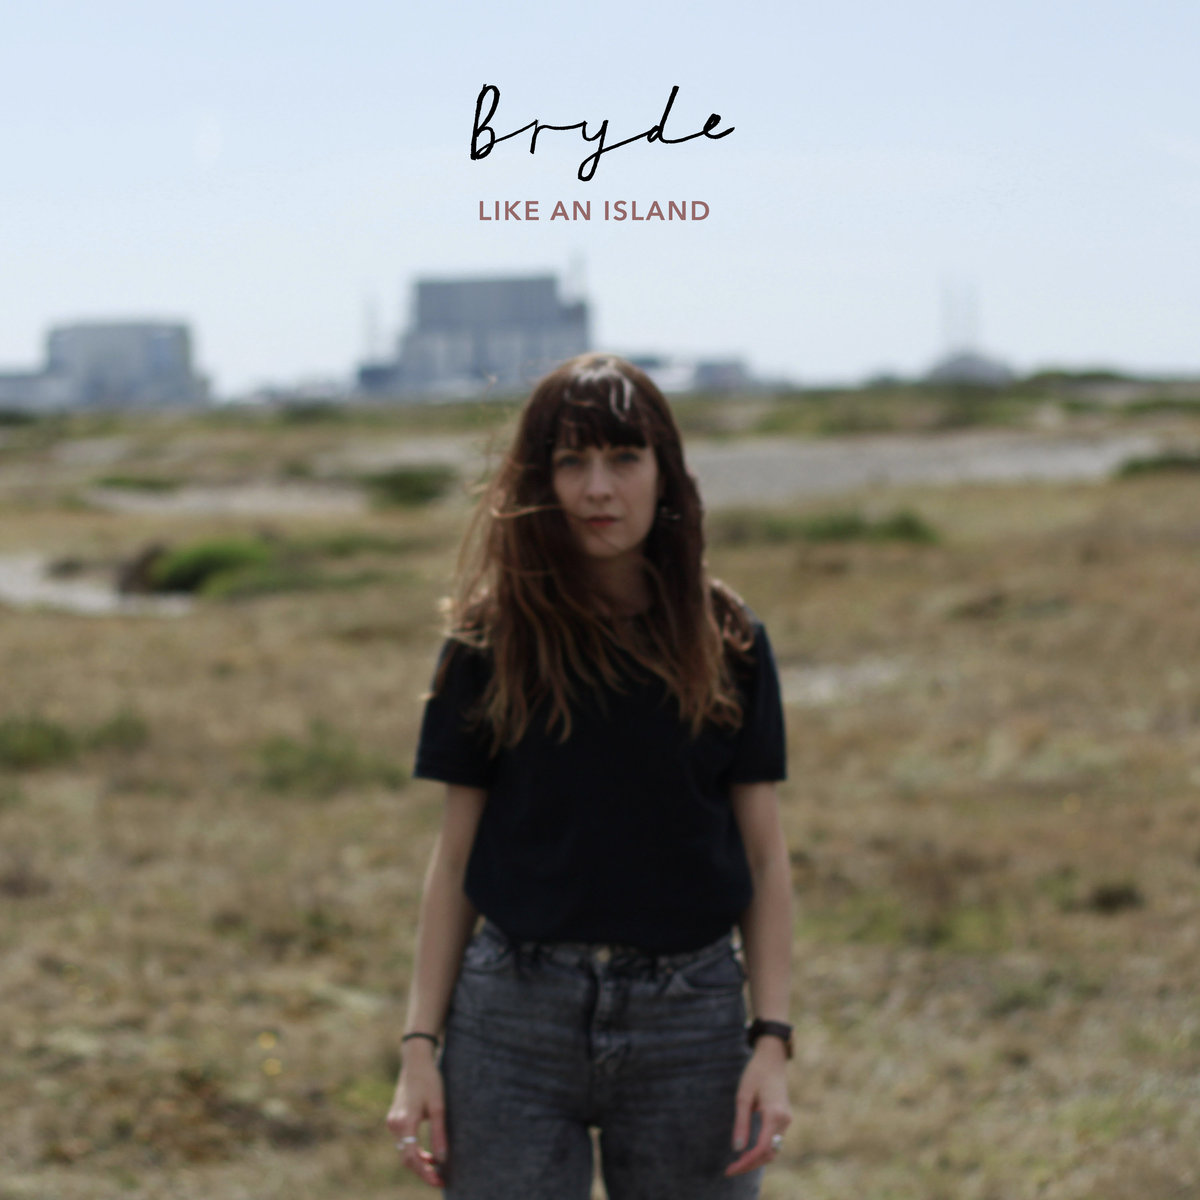 Artwork for Like an Island by Bryde